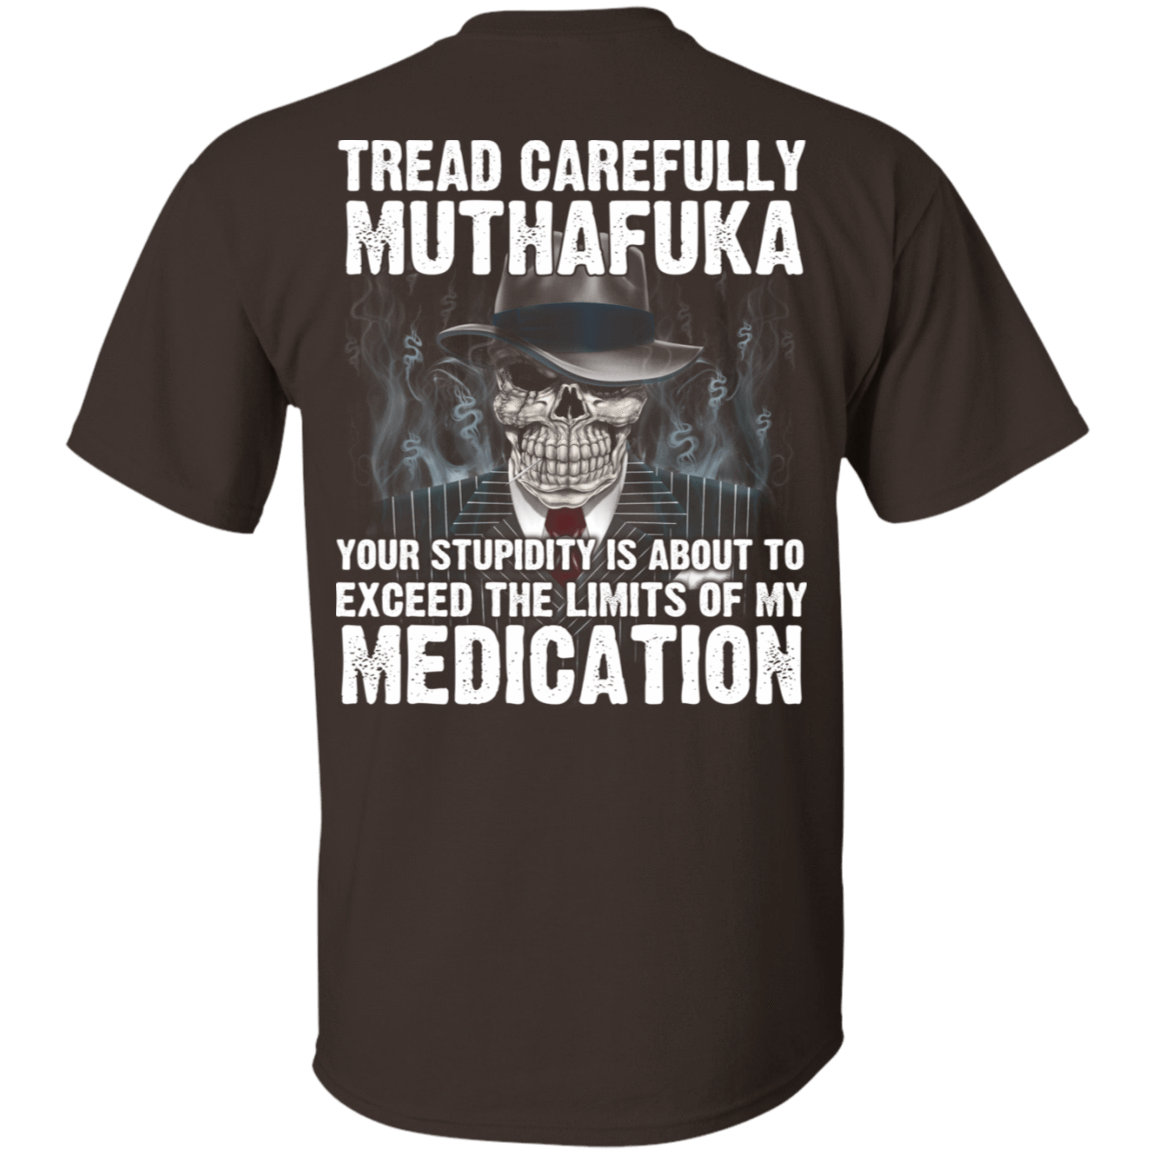 Tread Carefully Muthafuka Your Stupidity Is About To Exceed The Limits Of My Medication 22-2283-72709218-12087 - Tee Ript